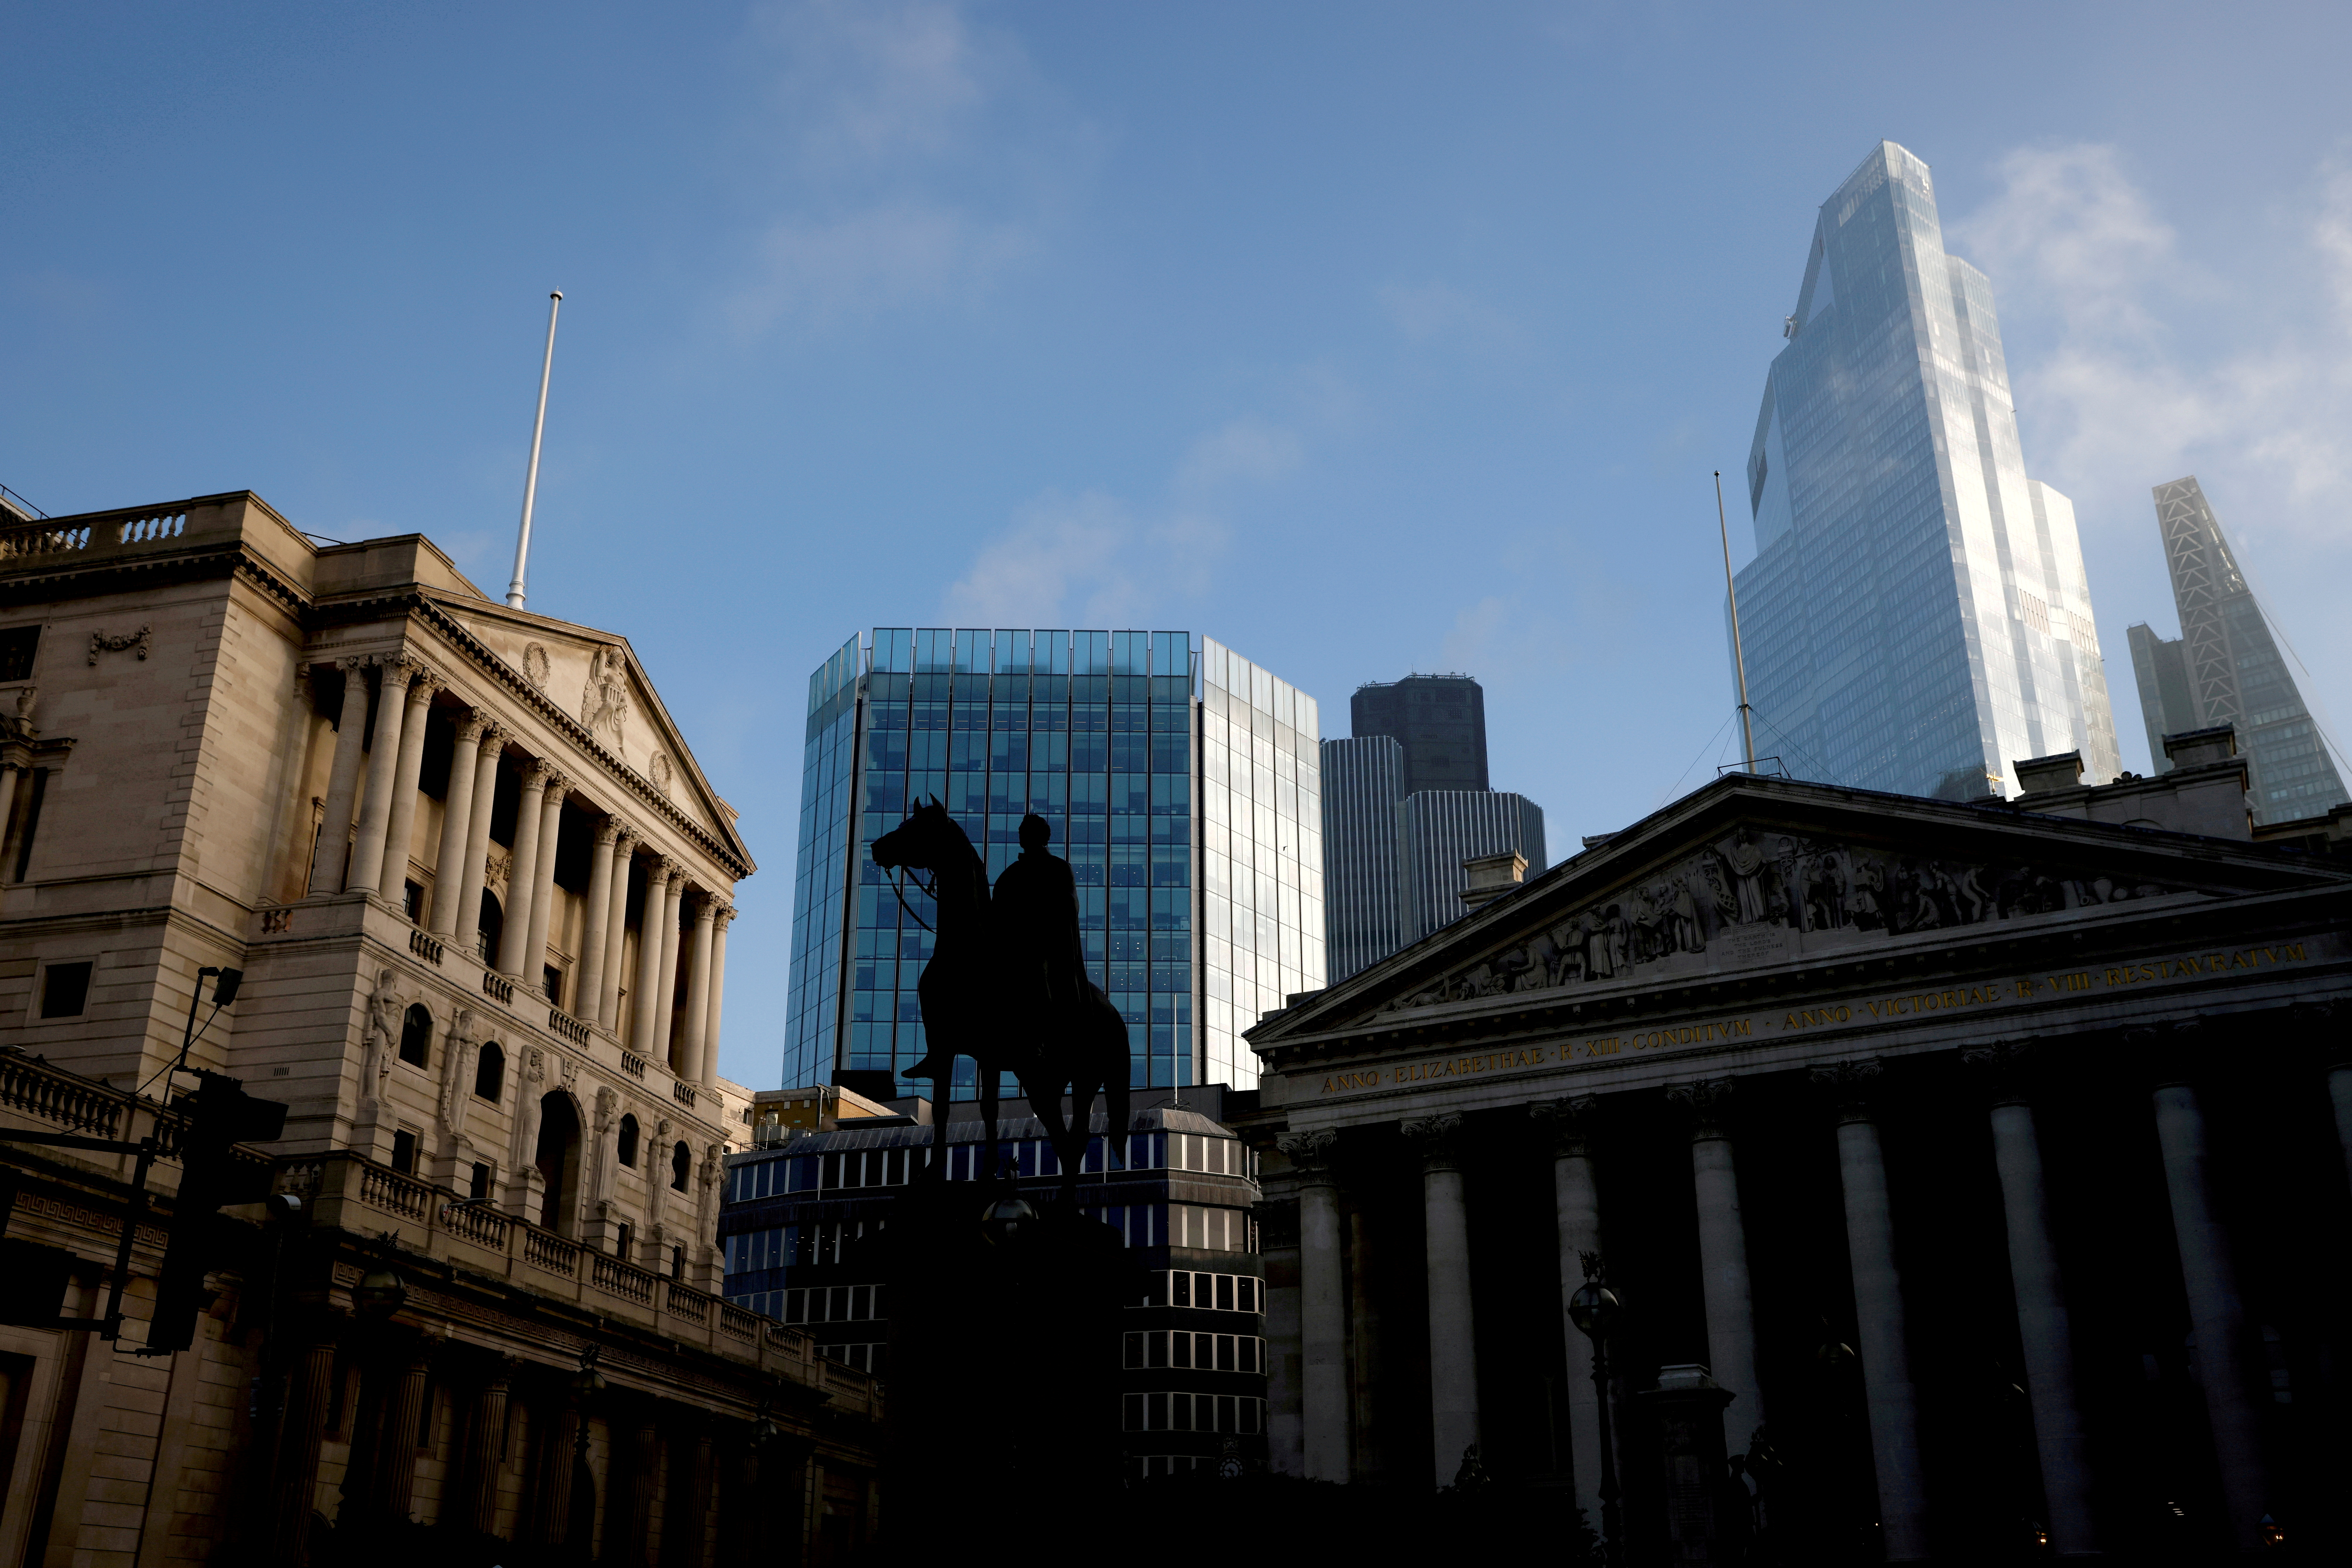 The Bank of England and the City of London financial district in London, Britain, November 5, 2020. REUTERS/John Sibley